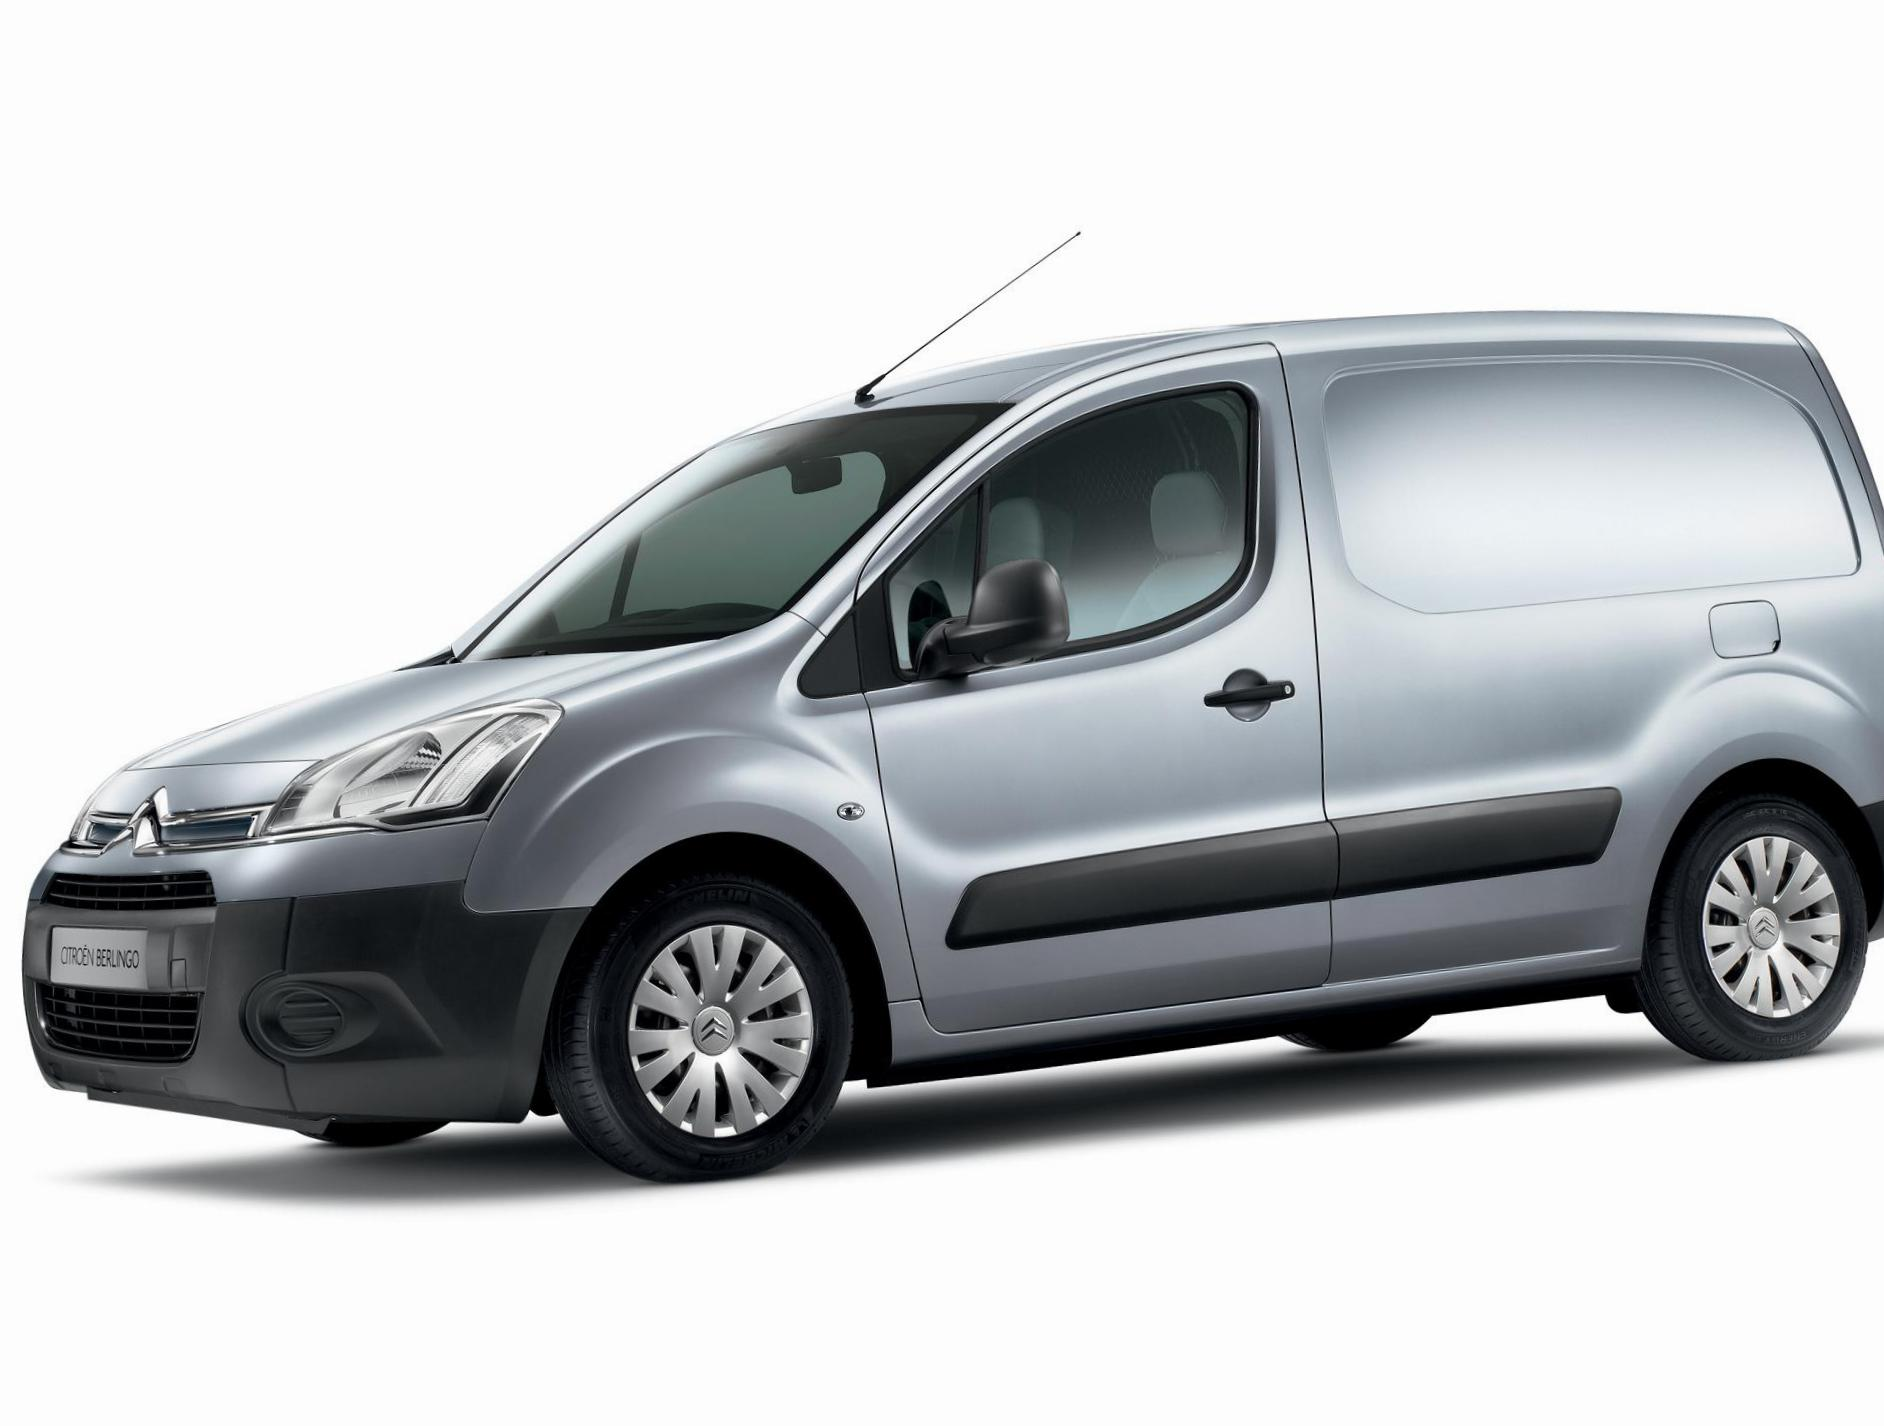 Citroen Berlingo Specifications 2014